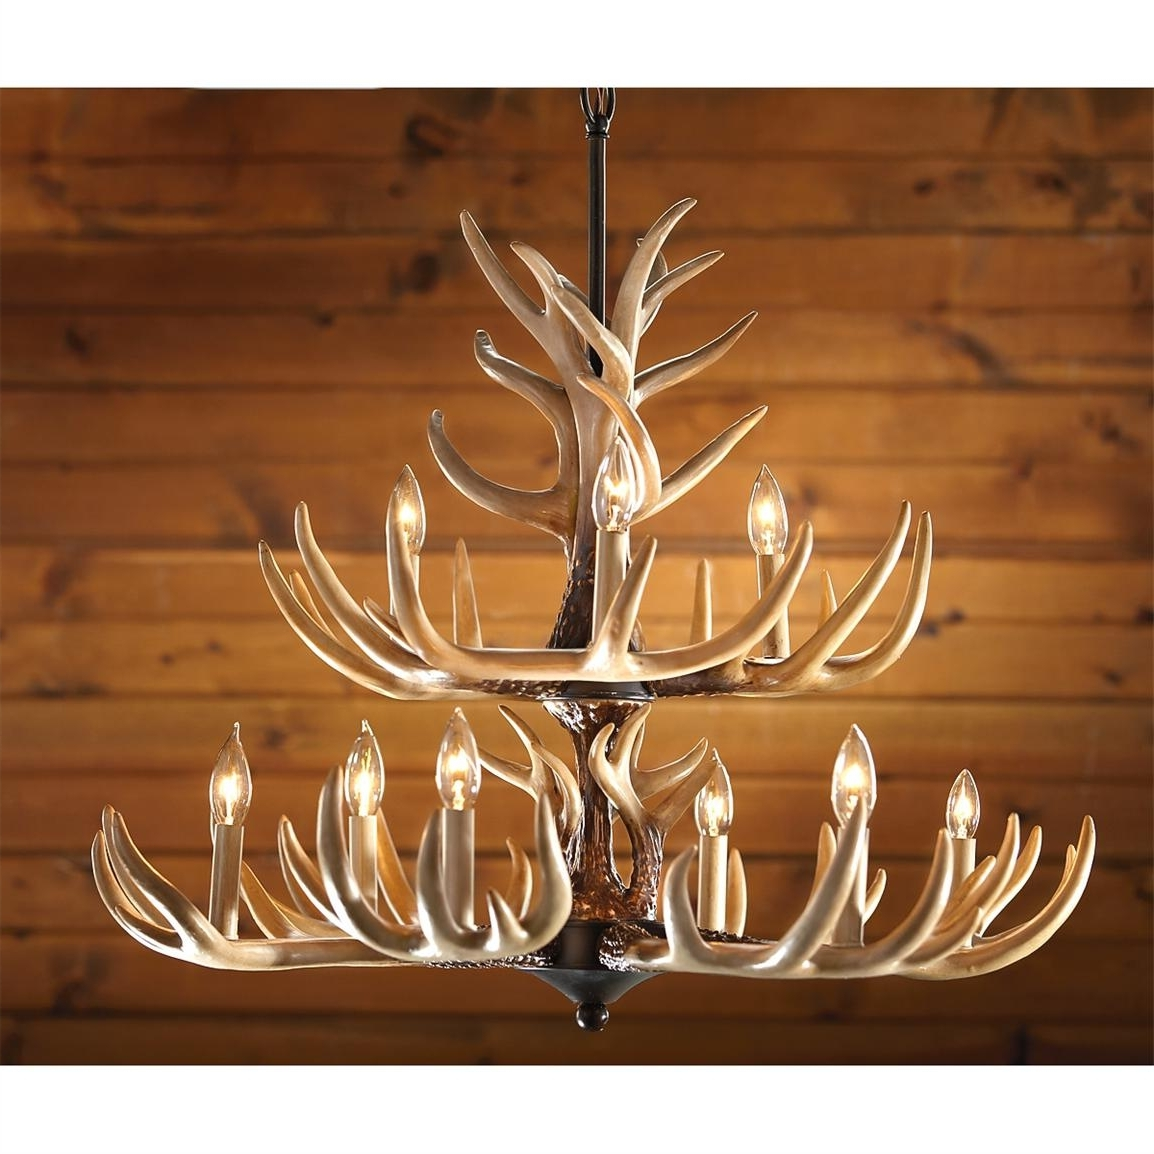 Castlecreek 9 Light Whitetail Antler Chandelier – 226093, Lighting Intended For Widely Used Antler Chandeliers (View 7 of 15)